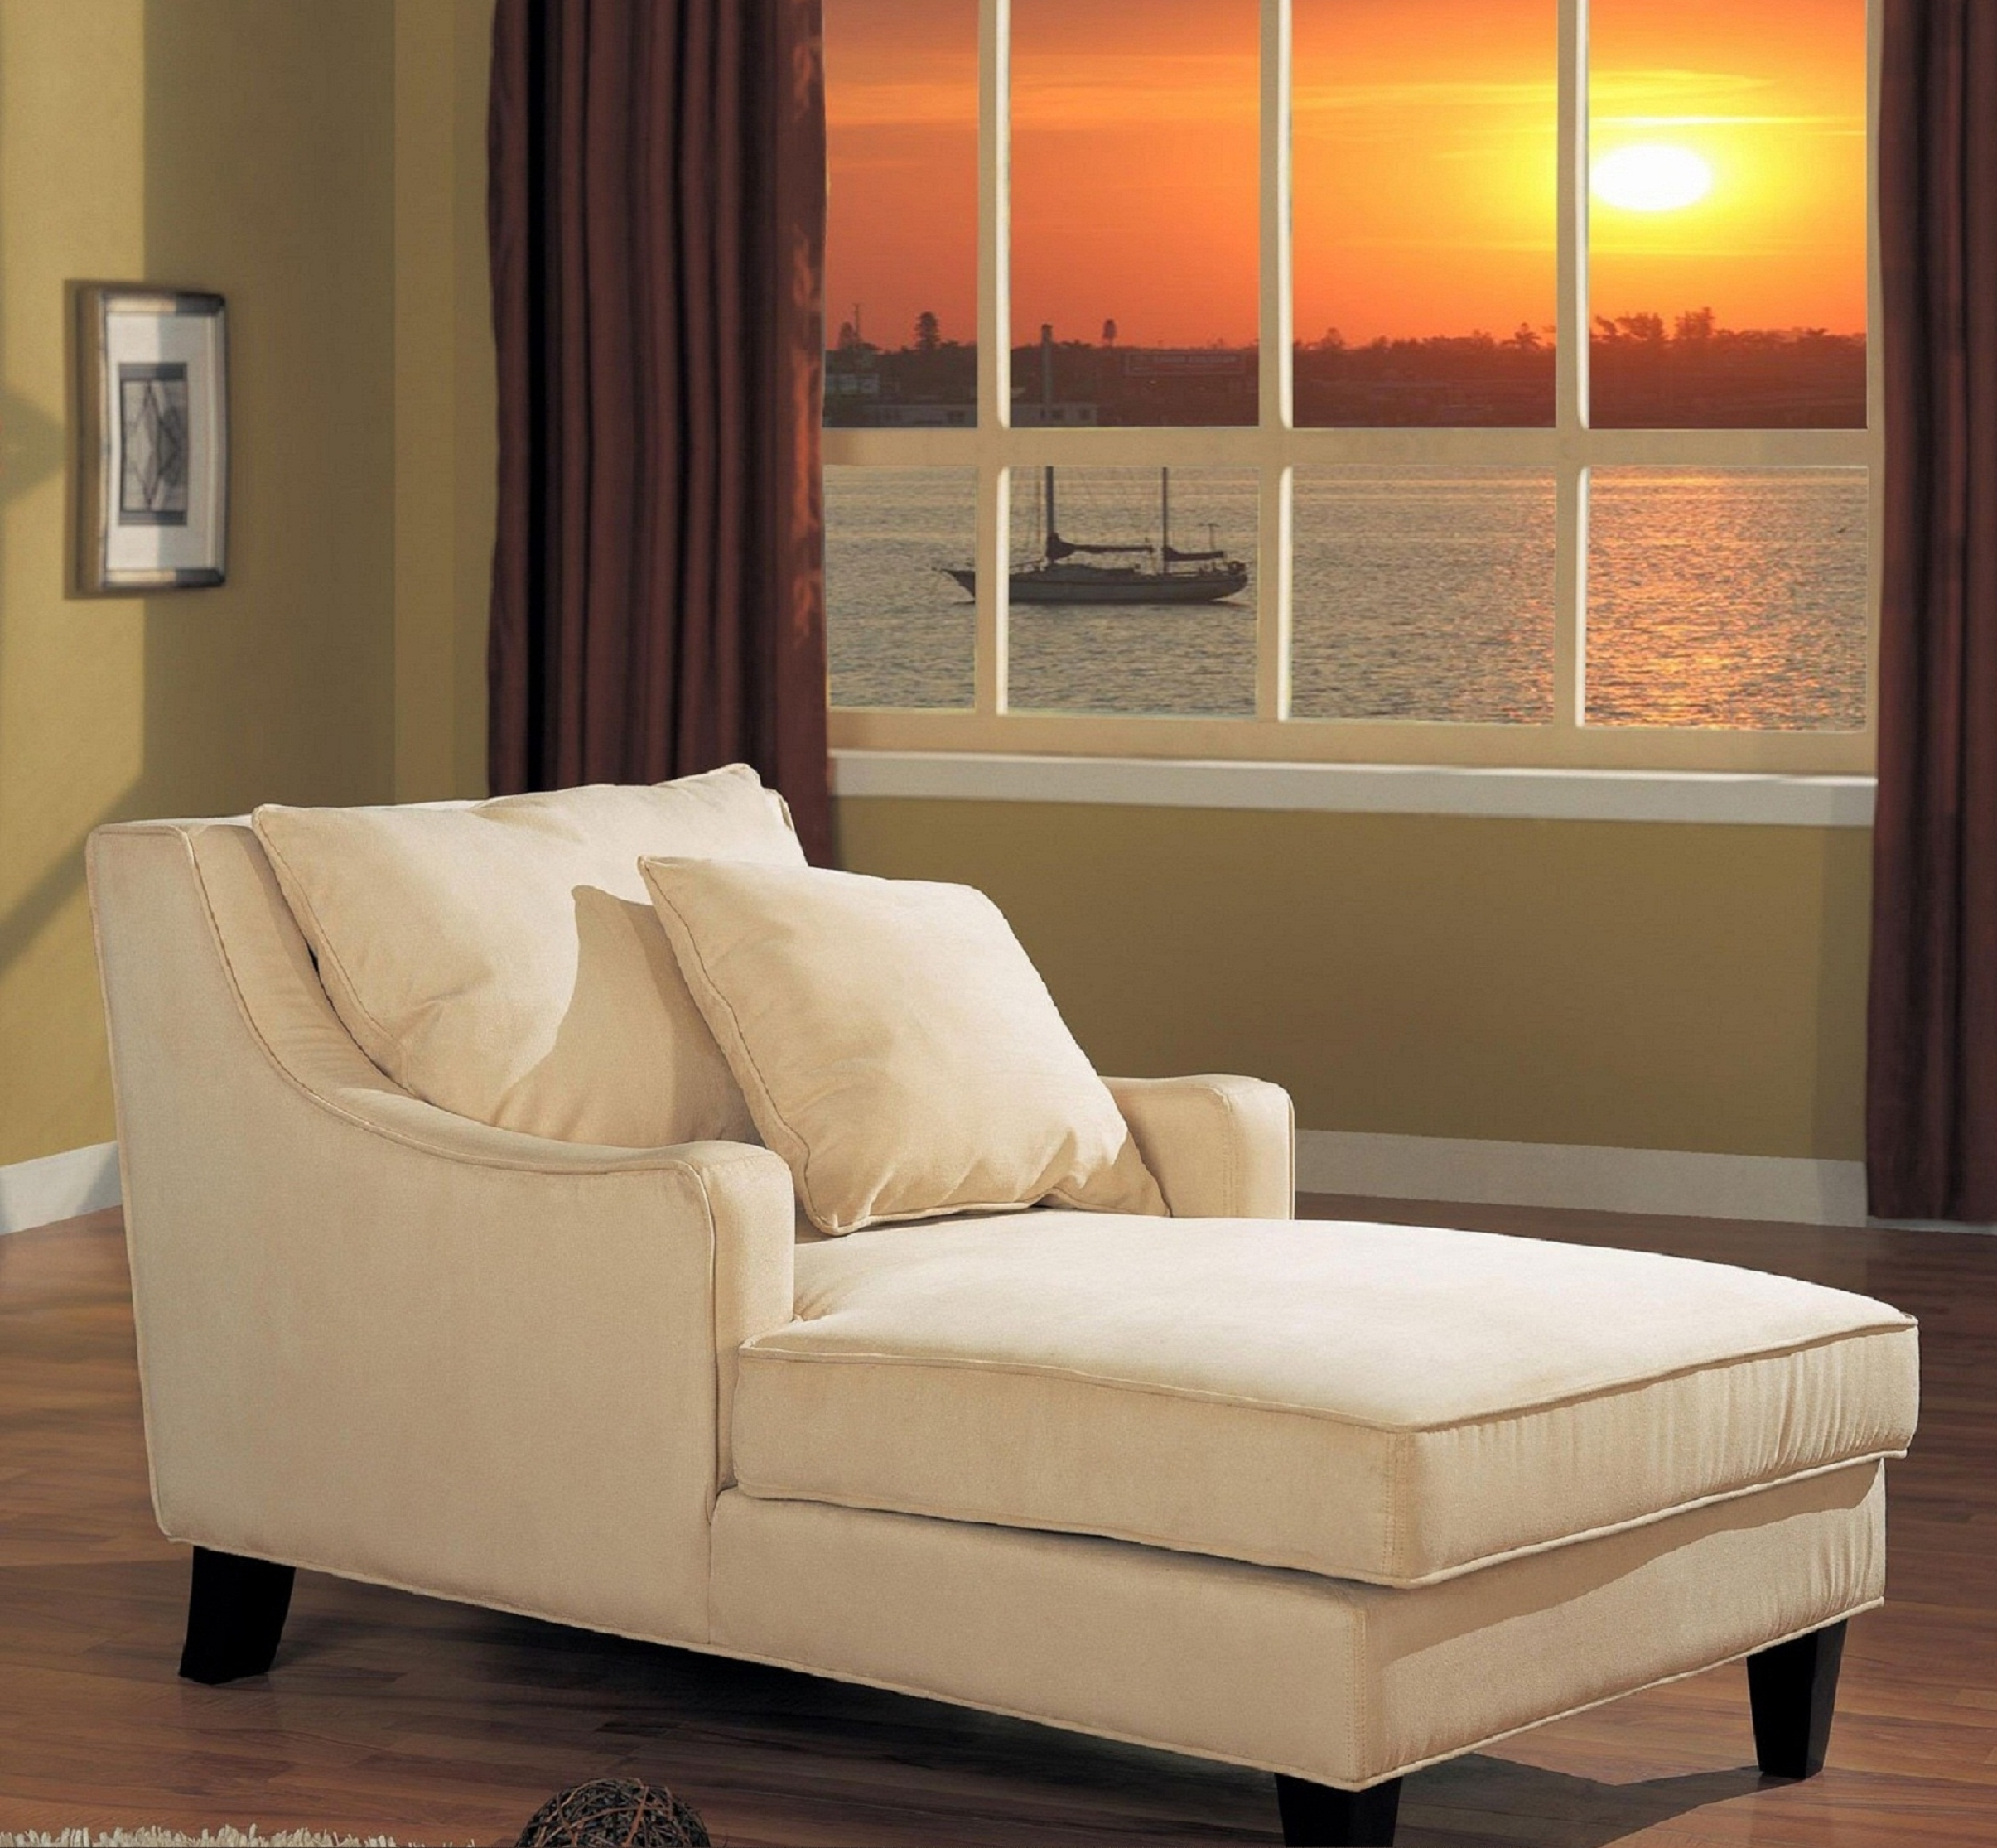 Upholstered Chaise Lounges intended for Most Recent Wide Beige Upholstered Chaise Lounge With Arm And Cushion Having